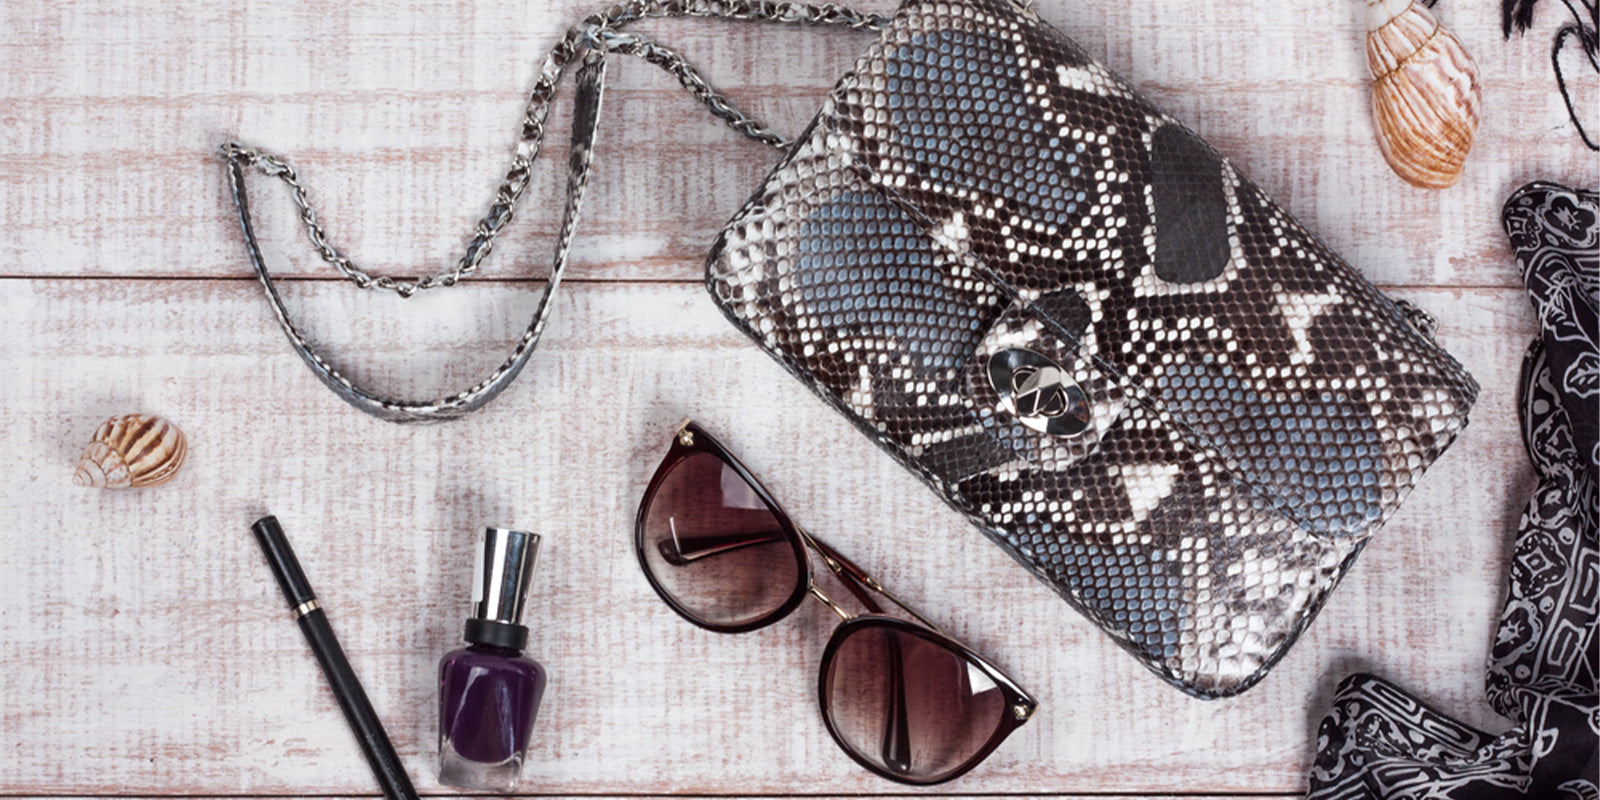 Snake print bag and accessories